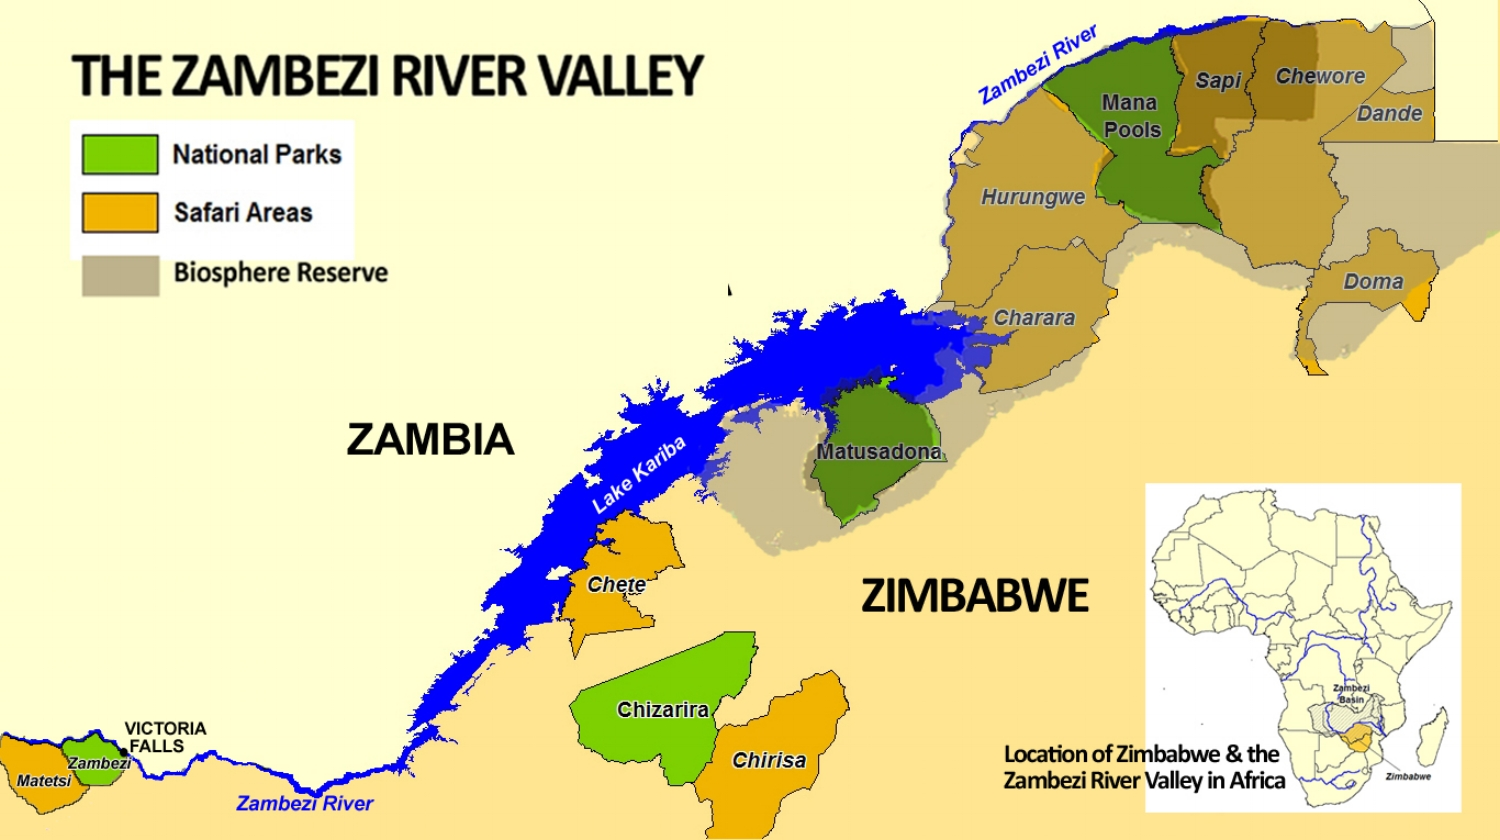 - Our activities are focused on the southern section of the Zambezi Valley, within Zimbabwe, which is one of the world's largest, contiguous areas of protected, unsettled, wild land set aside for natural resource conservation.